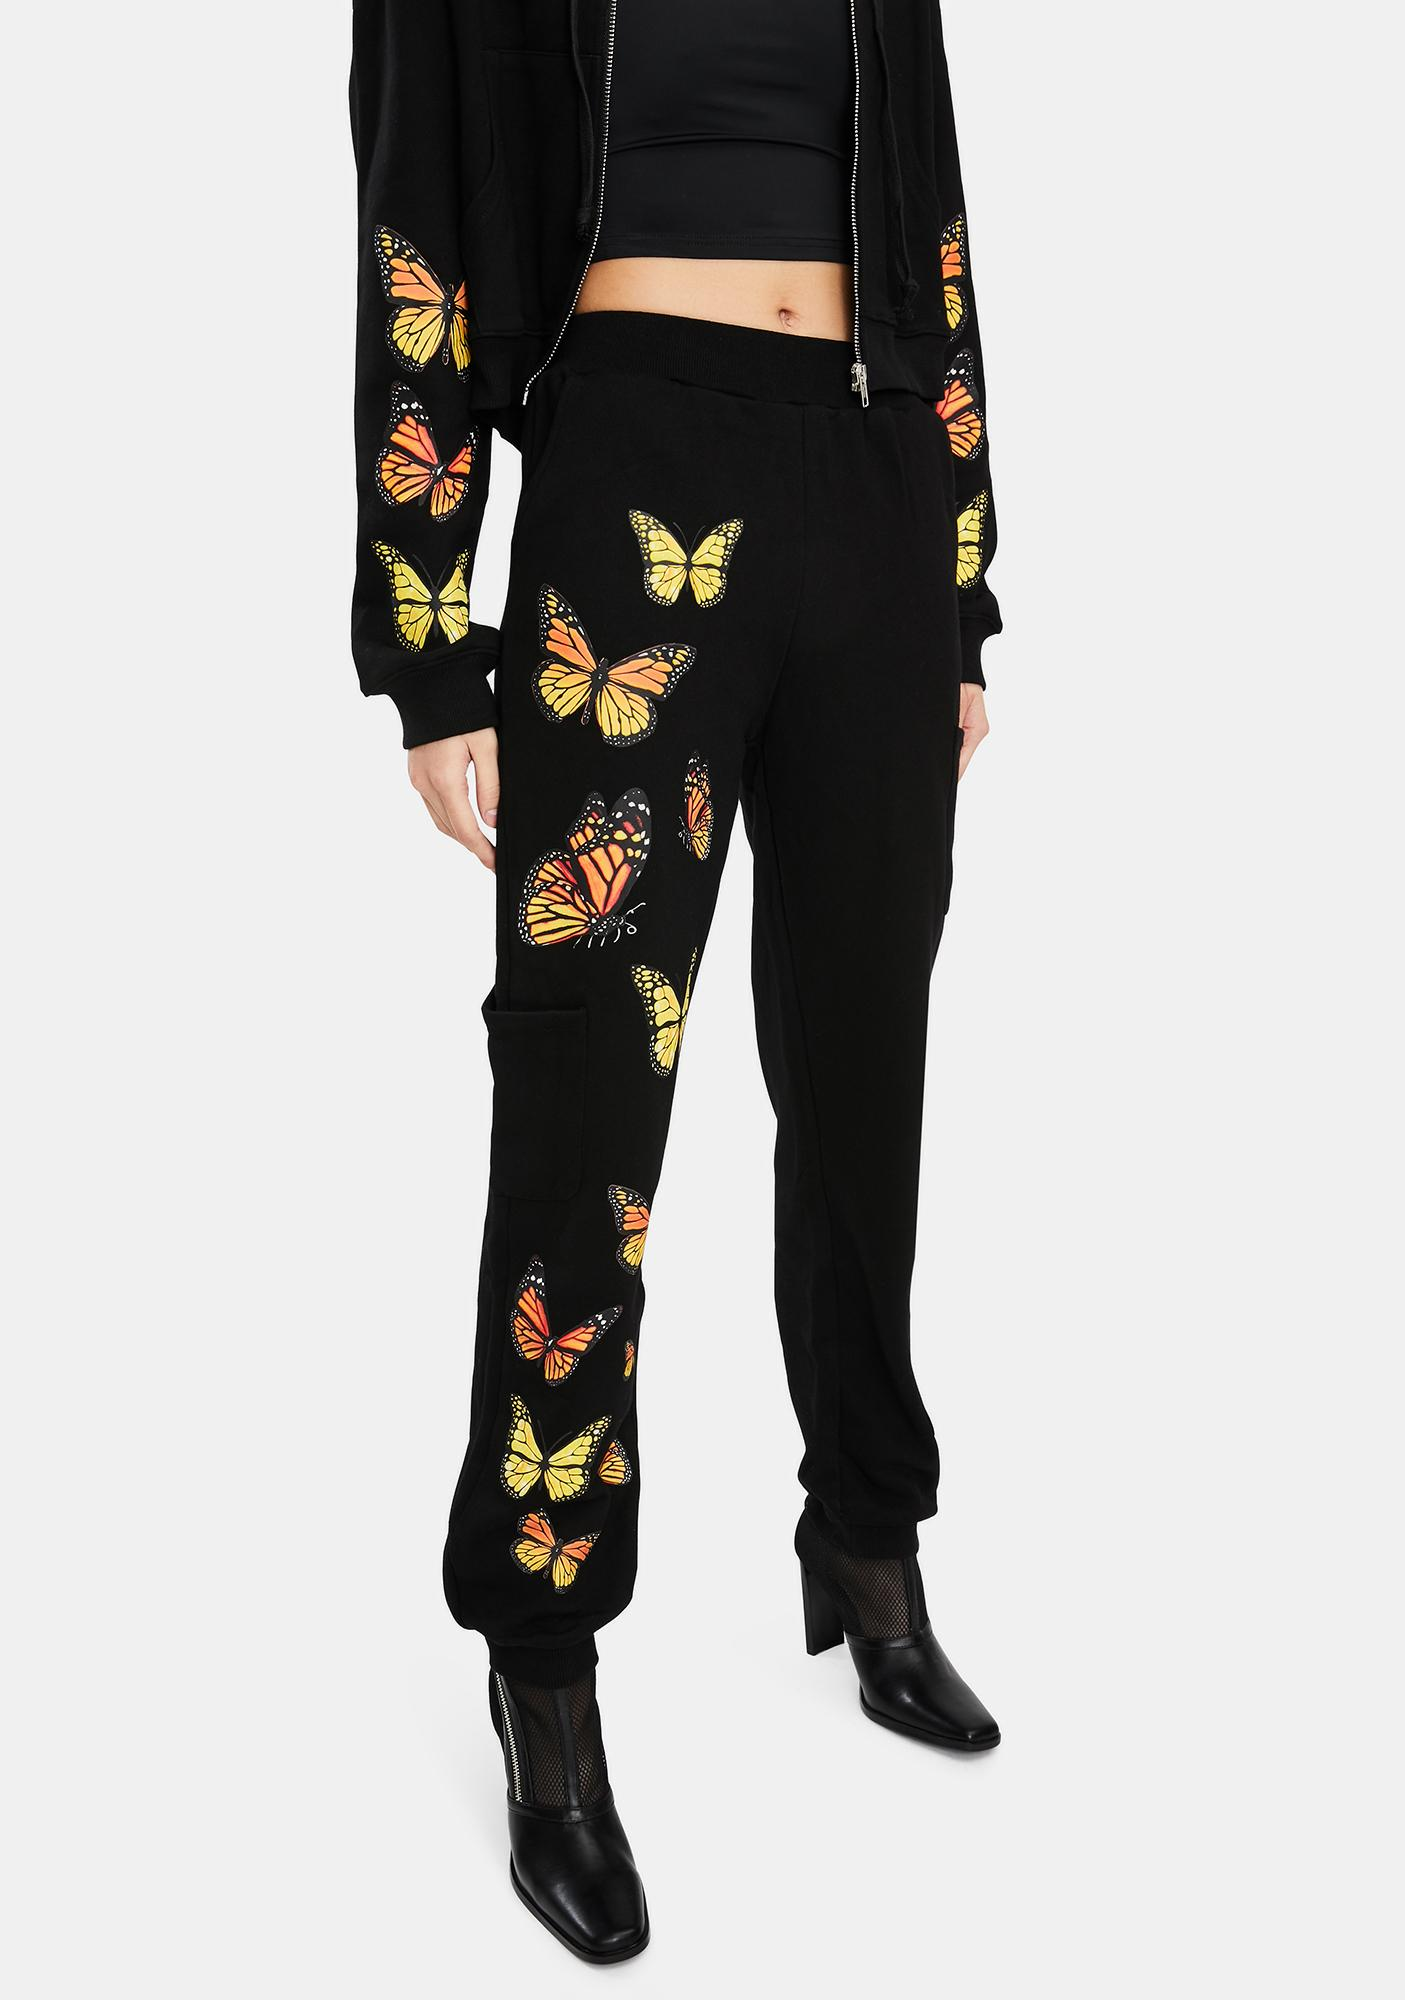 THE KRIPT Black Monarch Butterfly Sweatpants